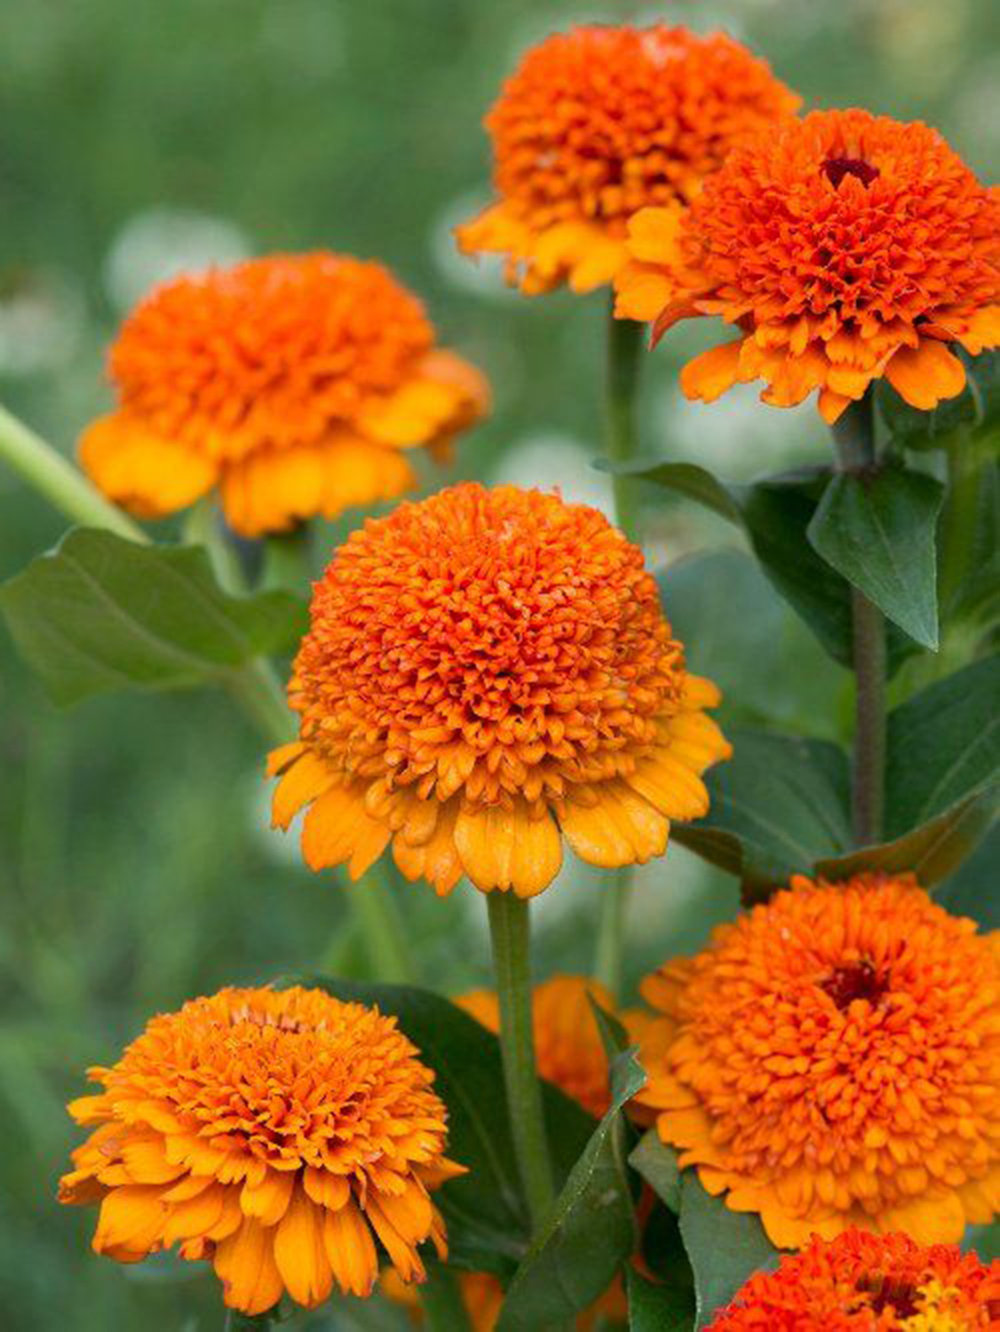 """Zinnia,  Zinnia elegans,  'Cresto Mix,' 'Mazurkia', 'State Fair':  As I mentioned in my 2018 variety review post, I never get double flowers on the crested zinnias like Zinderella. 'Cresto Mix' from Geo promises 75% double flowers - we'll see! 'Mazurkia' is a bicolor zinnia that normally wouldn't strike my fancy, but hey, I already have 25 varieties of zinns to plant, so what's one more, eh? Maybe I'll suprise myself. Seeds from  Geo , Floret, Baker Creek, Harris, Swallowtail. 'State Fair' is a variety with absolutely HUGE flowers, all at least 5"""" across and very productive for all that. They're also reliably double. I grew them as a landscaping cut in 2018 and just fell in love - I thought they were incredible."""